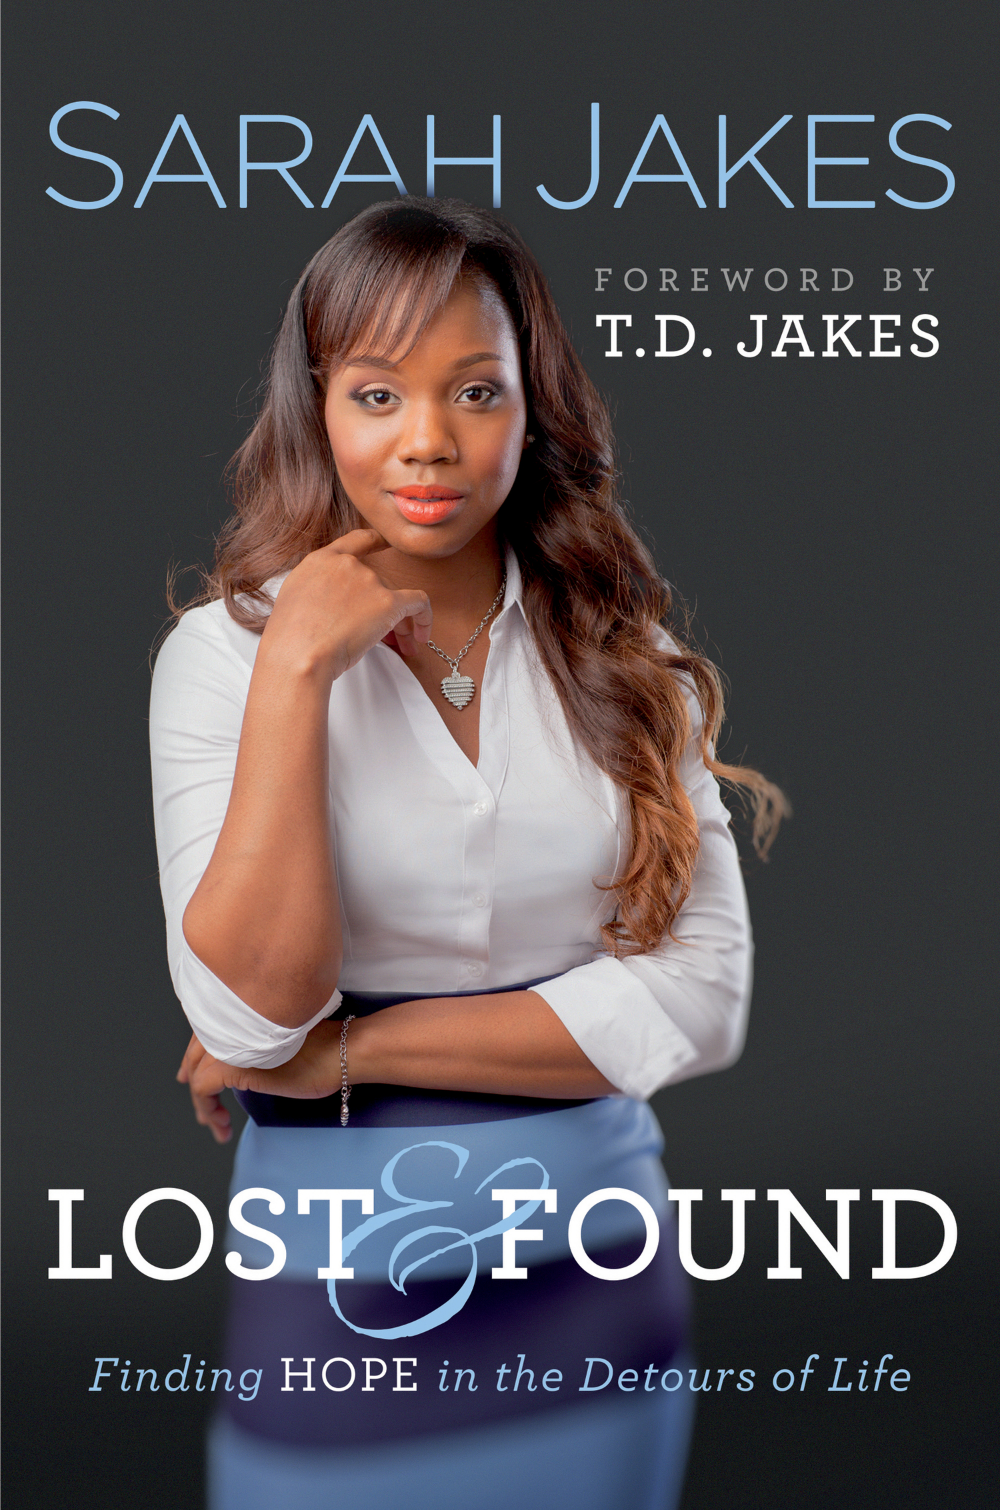 Like every girl, Sarah Jakes dreamed of a life full of love, laughter, and happy endings. But her dreams changed dramatically when she became pregnant at age thirteen, a reality only compounded by the fact that her father, Bishop T.D. Jakes, was one of the most influential megachurch pastors in the nation. As a teen mom and a high-profile preacher's kid, her road was lonely. She was shunned at school, gossiped about at church. And a few years later, when a fairy-tale marriage ended in a spiral of hurt and rejection, she could have let her pain dictate her future.    Instead, she found herself surrounded by a God she'd given up on, crashing headlong with Him into a destiny she'd never dreamed of. Sarah's captivating story, unflinchingly honest and deeply vulnerable, is a vivid reminder that God can turn even the deepest pain into His perfection.    More than a memoir,  Lost and Found  offers hope and encouragement. Perhaps you, like Sarah, find yourself wandering the detours of life. Regardless of how lost you feel, you, too, can be found.